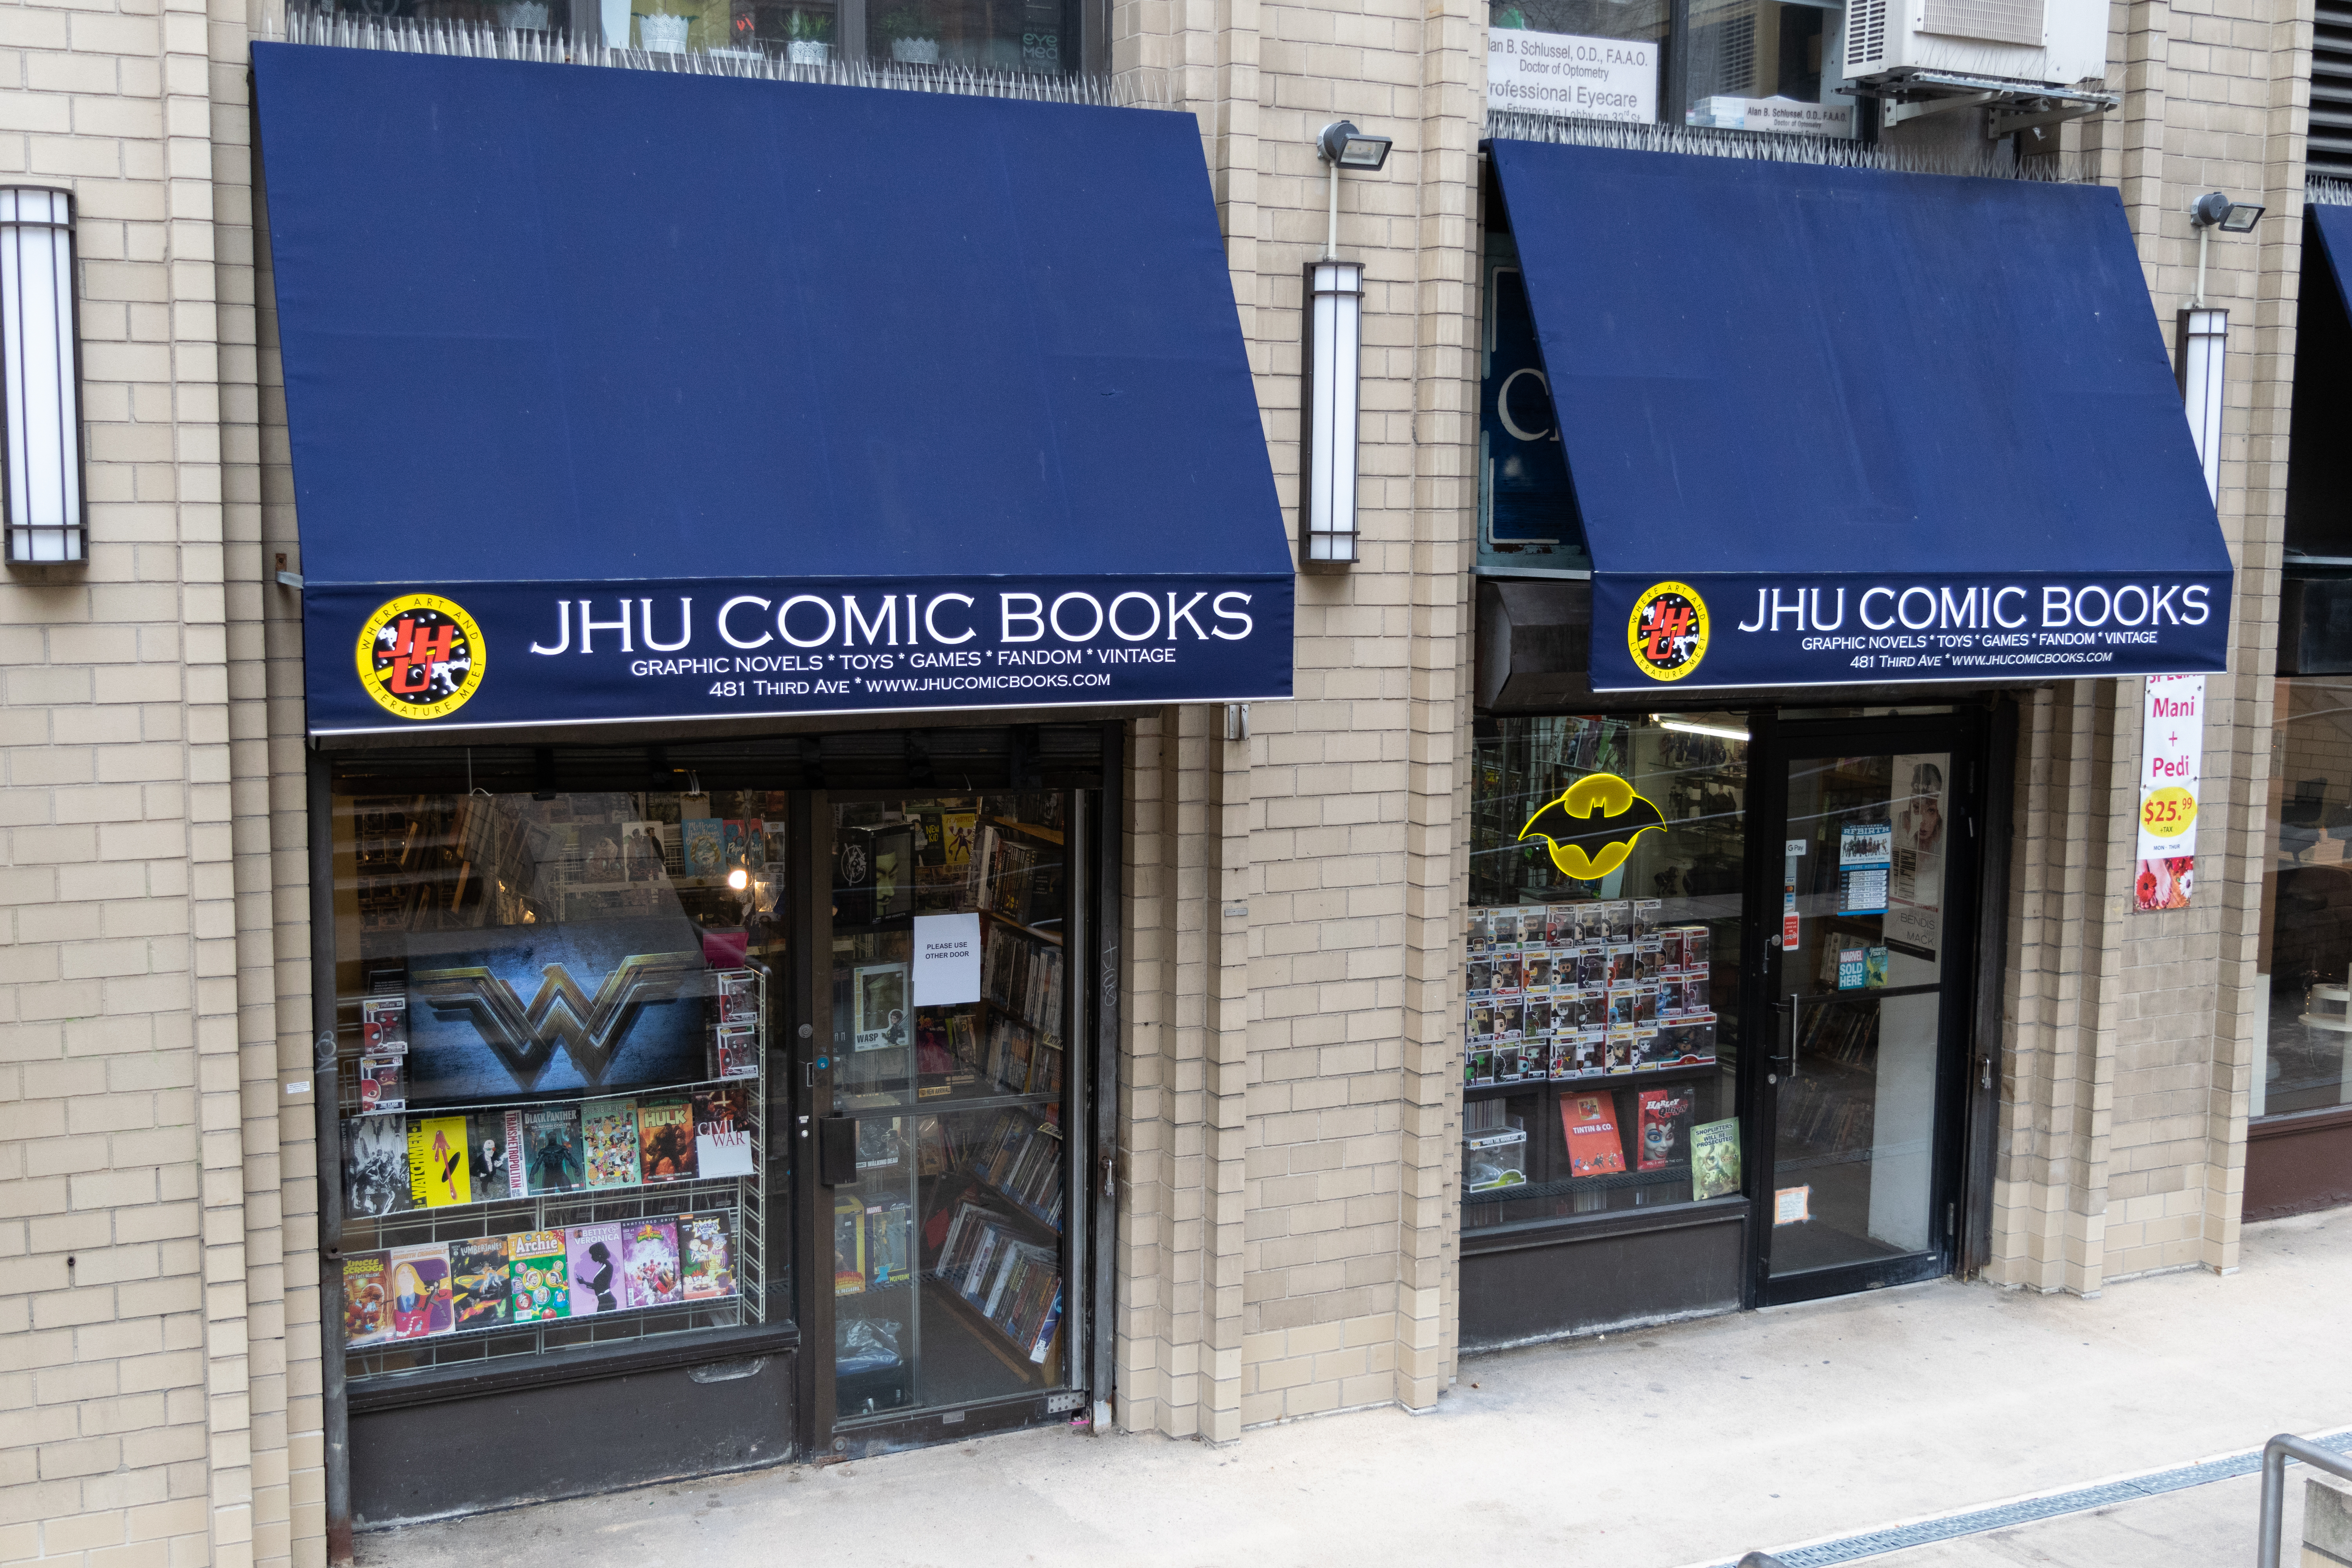 JHU Comic Books at 481 3rd Ave